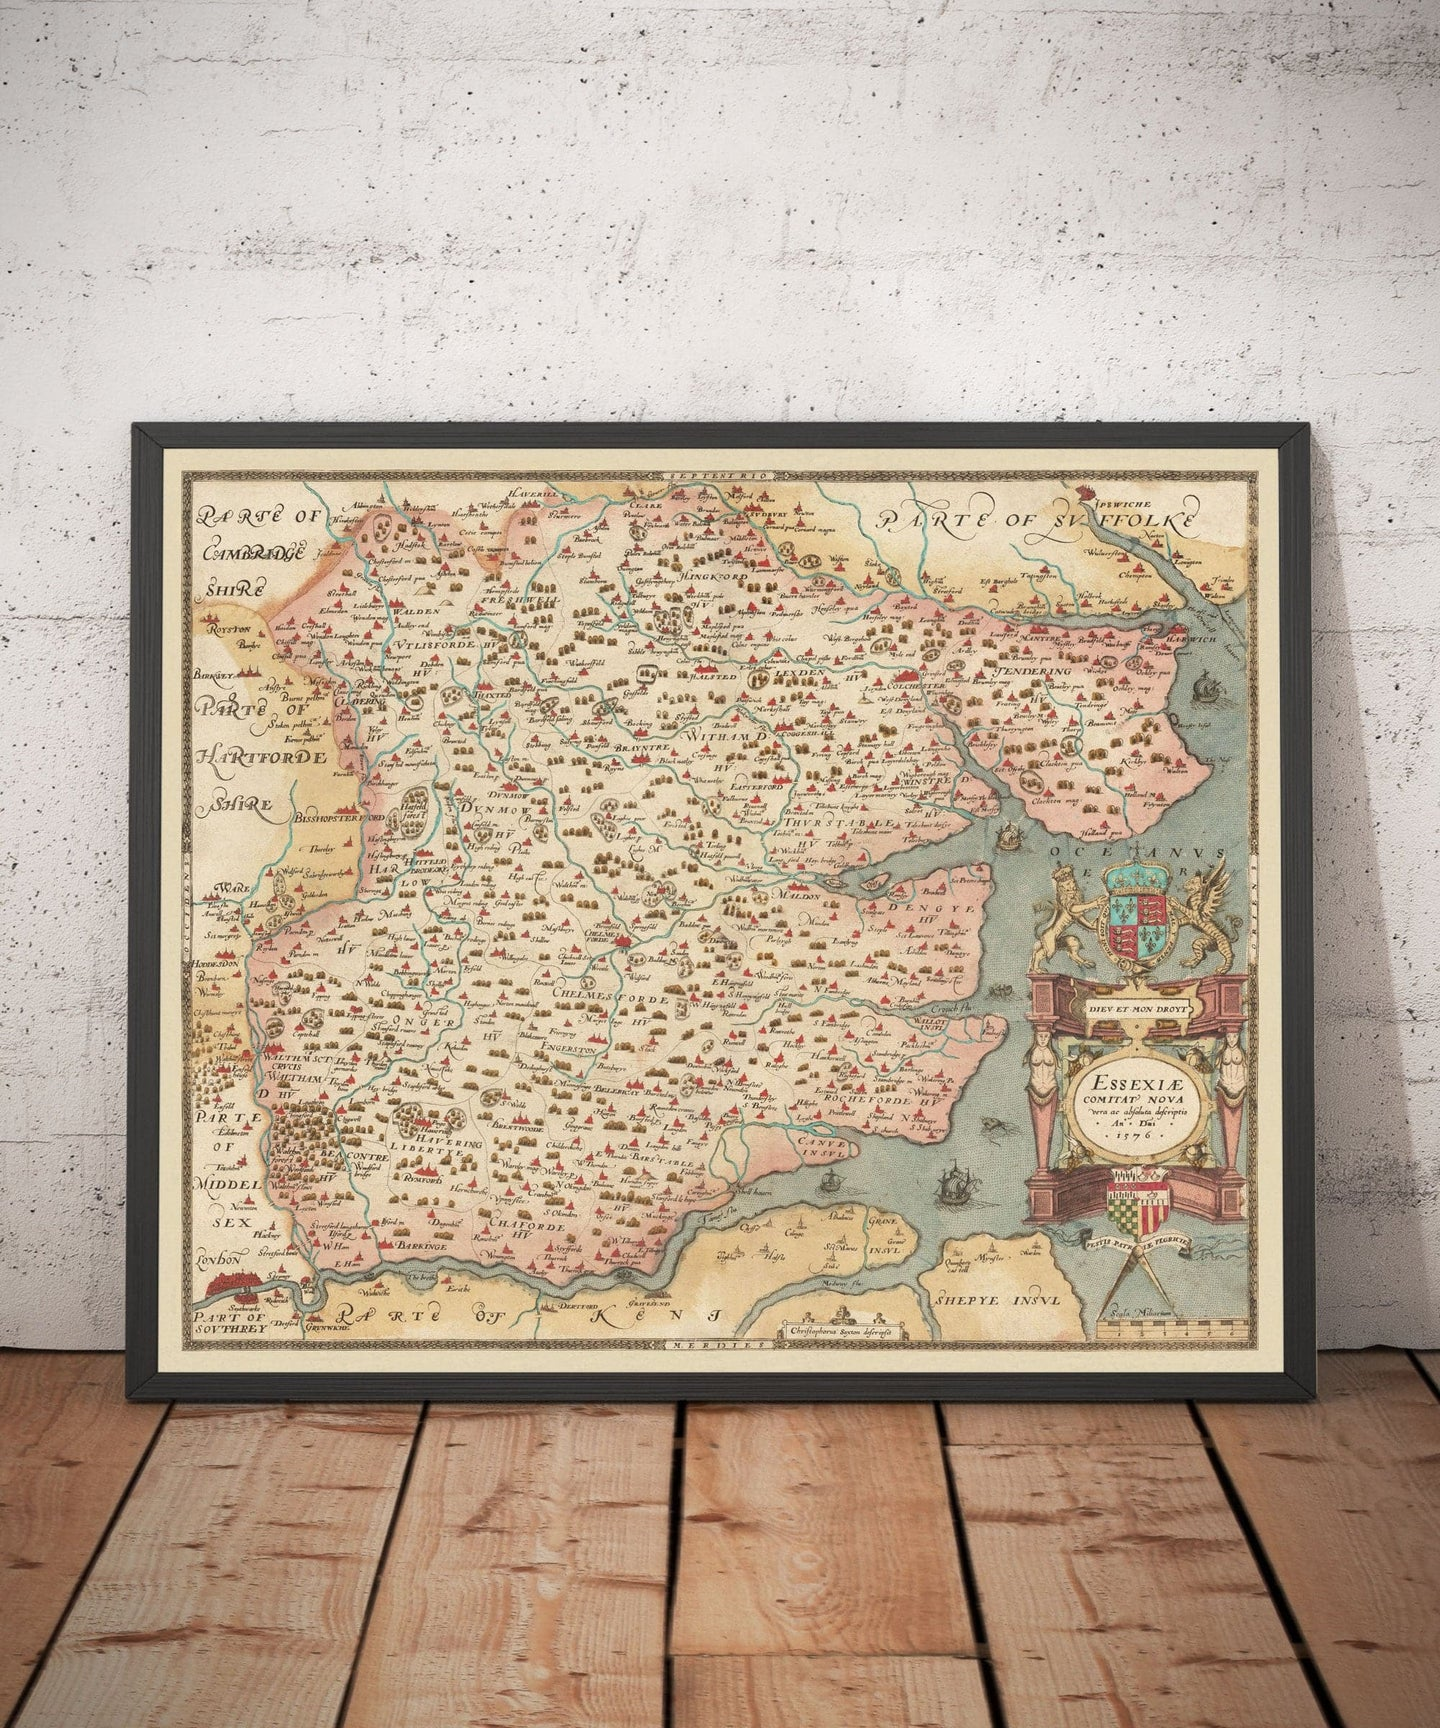 Old Map of Essex 1579 by Christopher Saxton - First Map of Essex -  Southend, Colchester, Chelmsford - Vintage, Antique Christmas Gift - Framed, Unframed